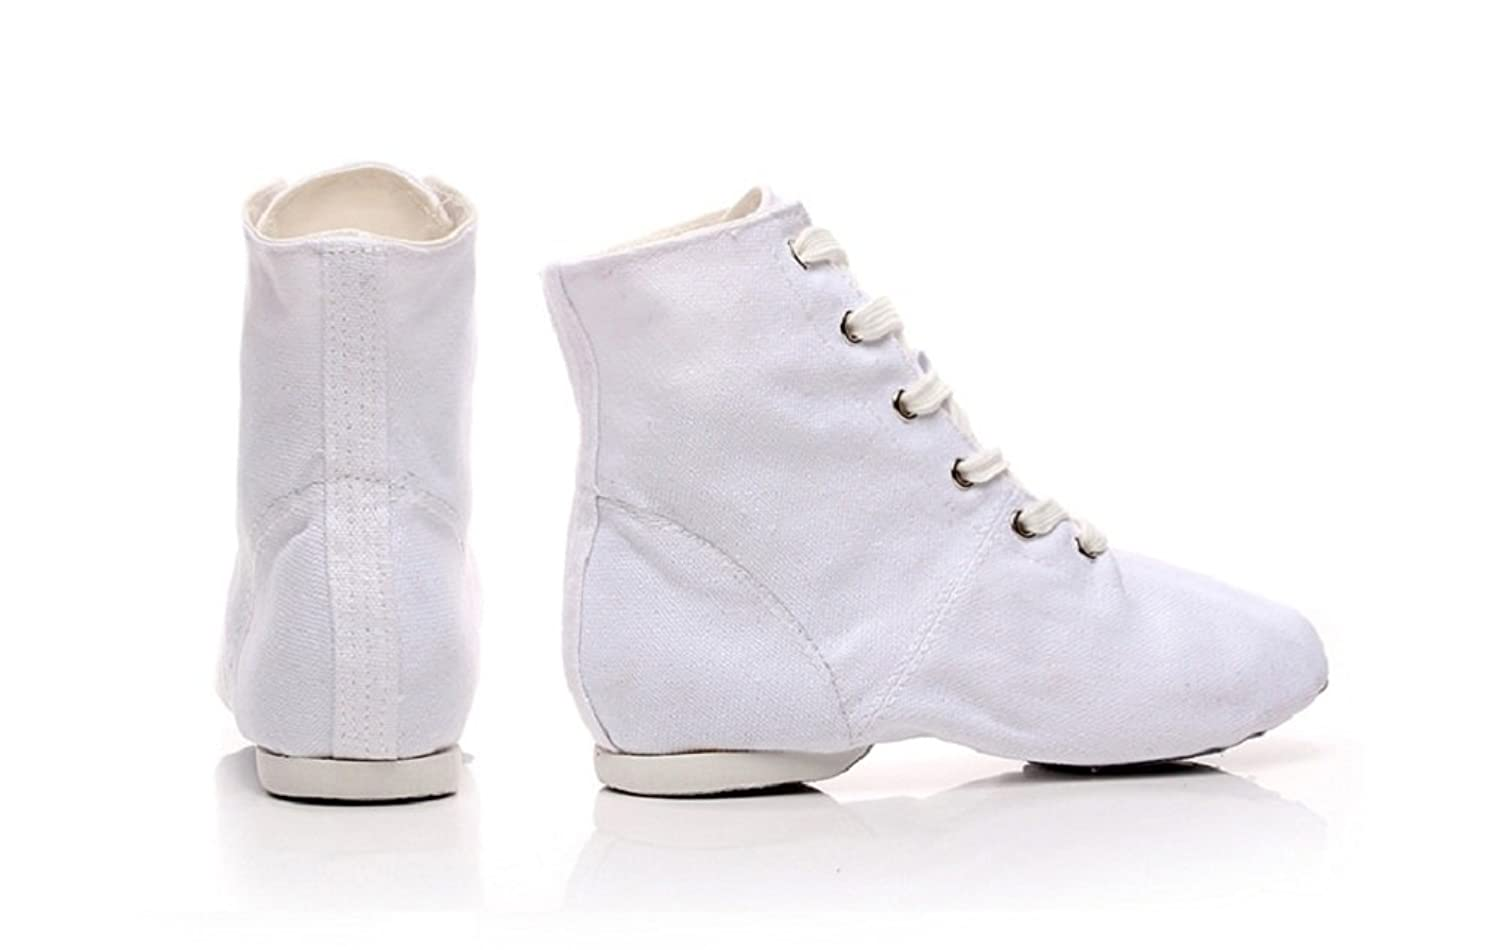 Vintage Boots- Buy Winter Retro Boots NLeahershoe Lace-up Canvas Dance Shoes Flat Jazz Boots for Practice Suitable for Both Men and Women $14.99 AT vintagedancer.com